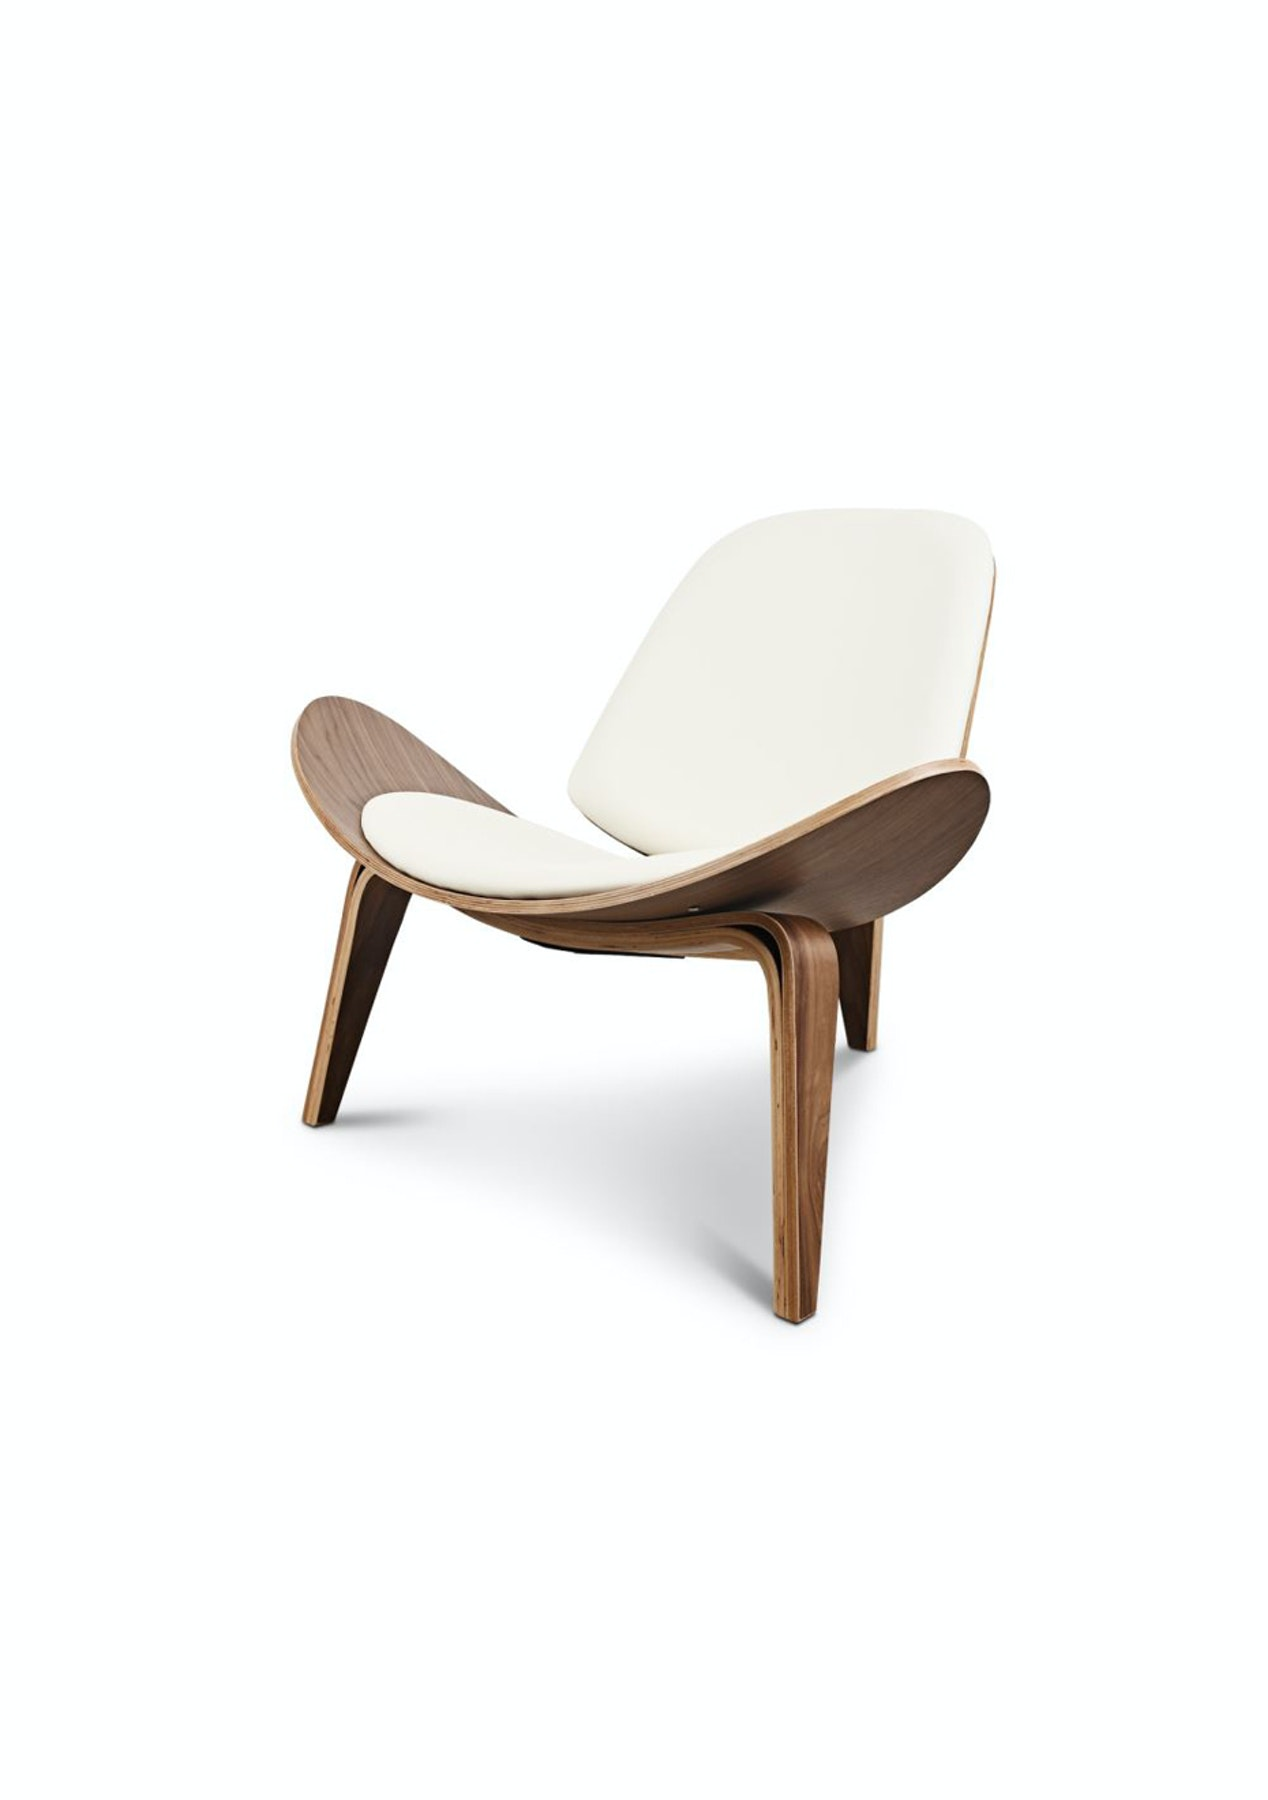 Replica designer shell occasional chair scandi inspired for Reproduction designer furniture